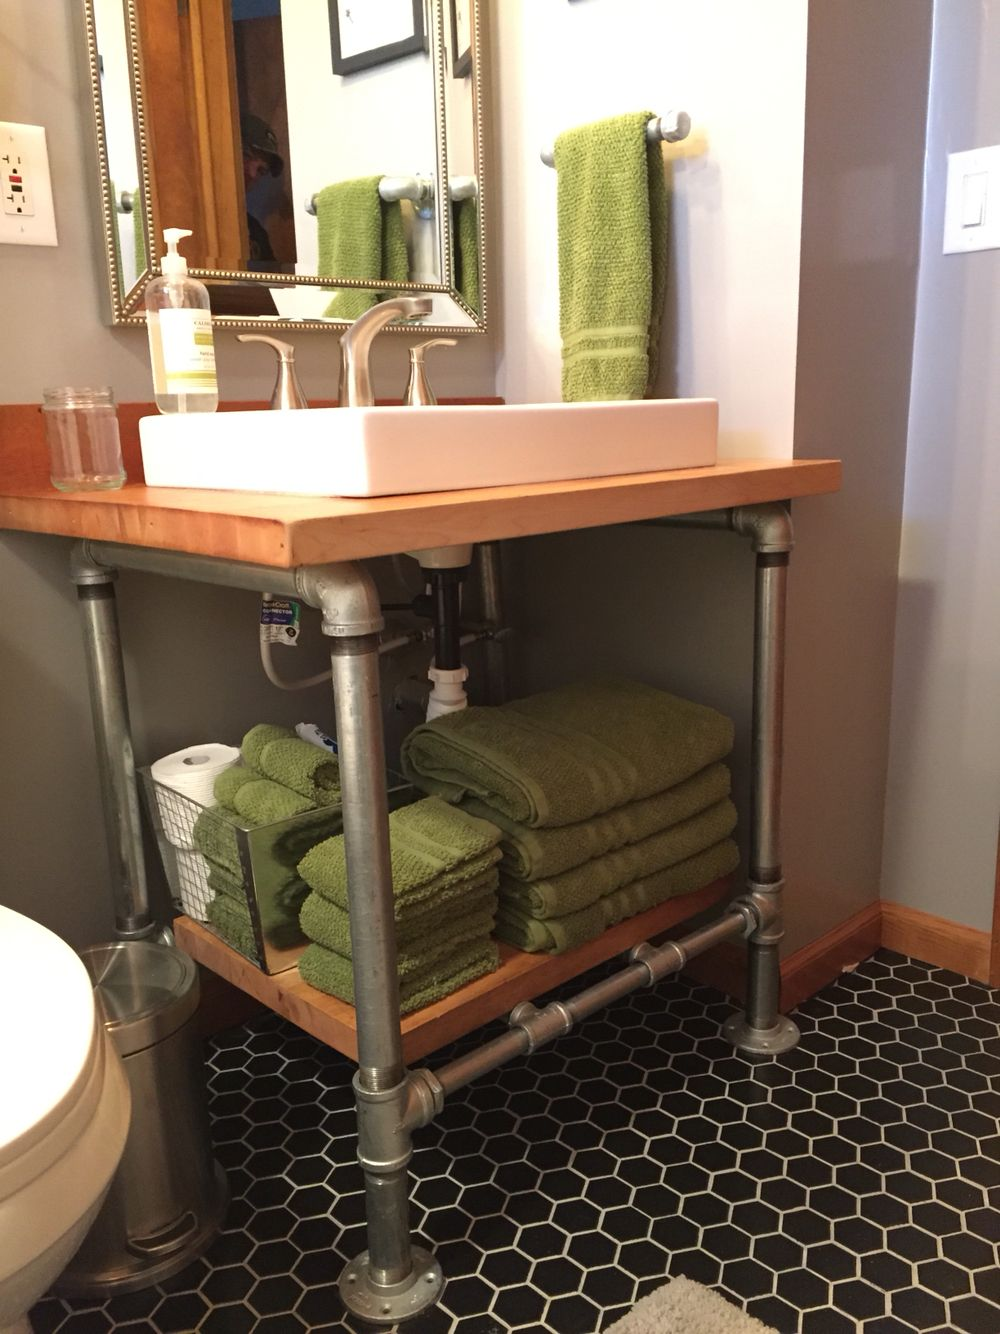 Combination Vanity Units For Small Bathrooms: Another View Of The Open Style Vanity. We Liked The